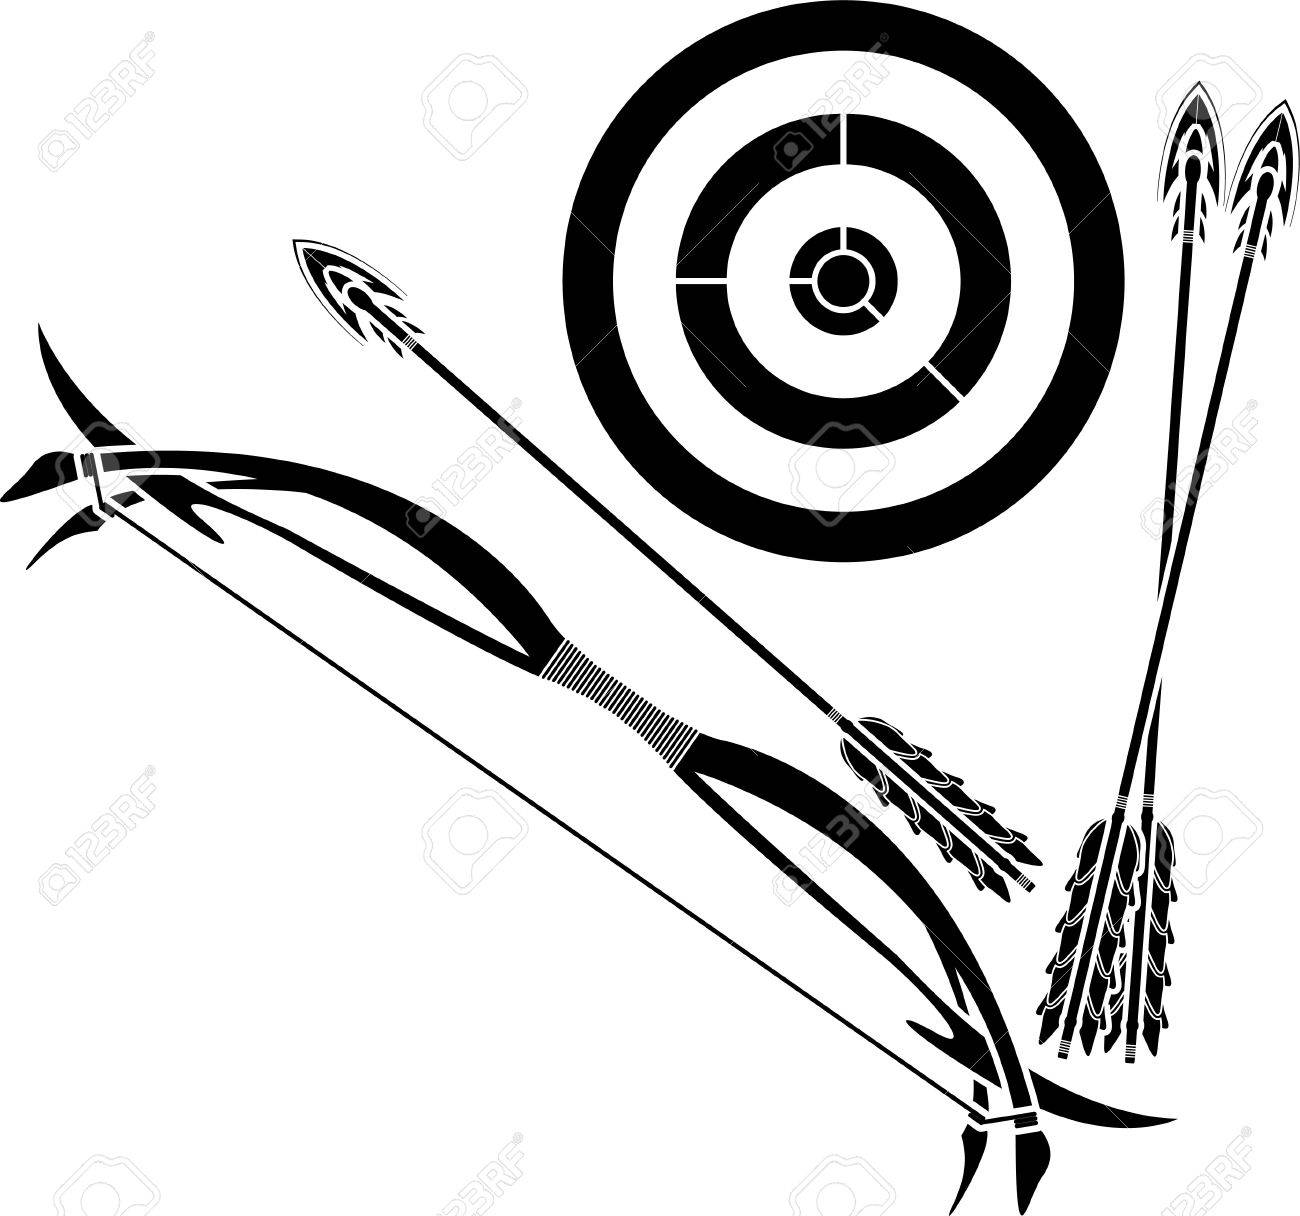 bow and target. stencil. vector illustration Stock Vector - 9177576